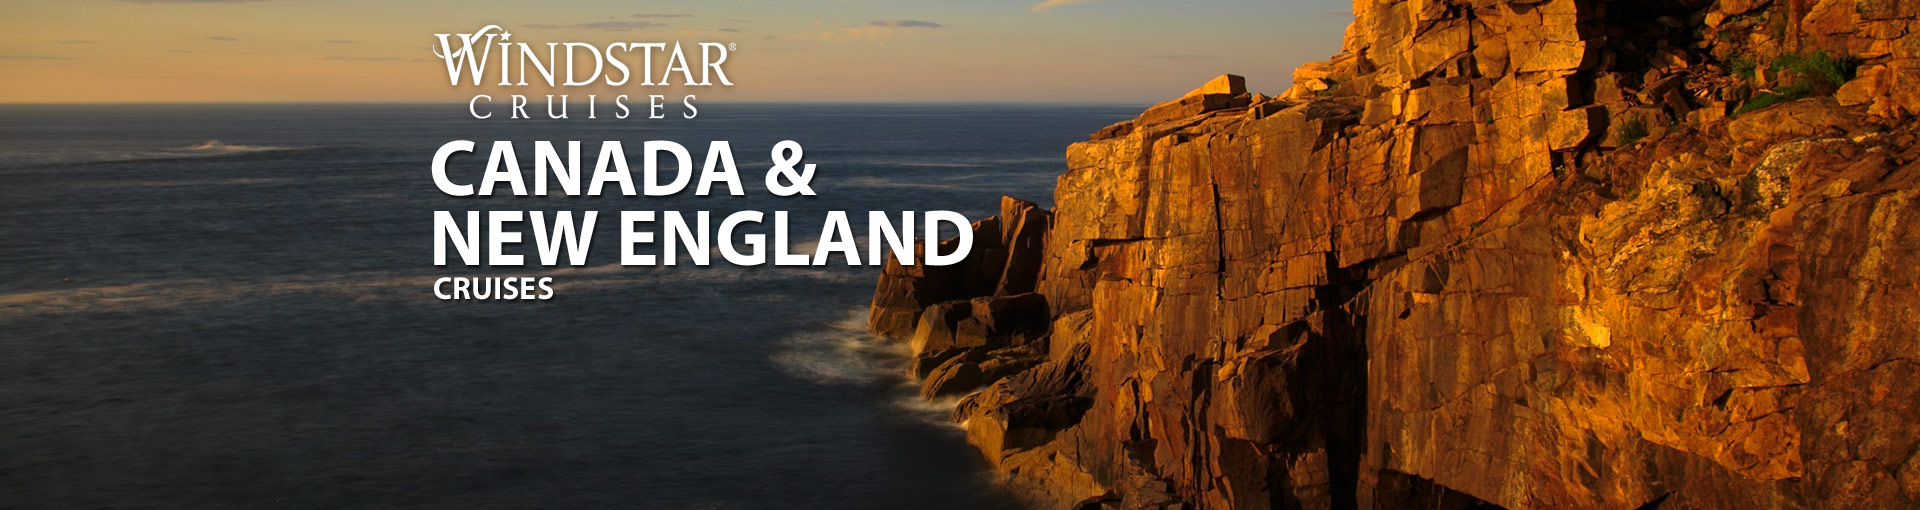 Windstar Cruises to Canada and New England